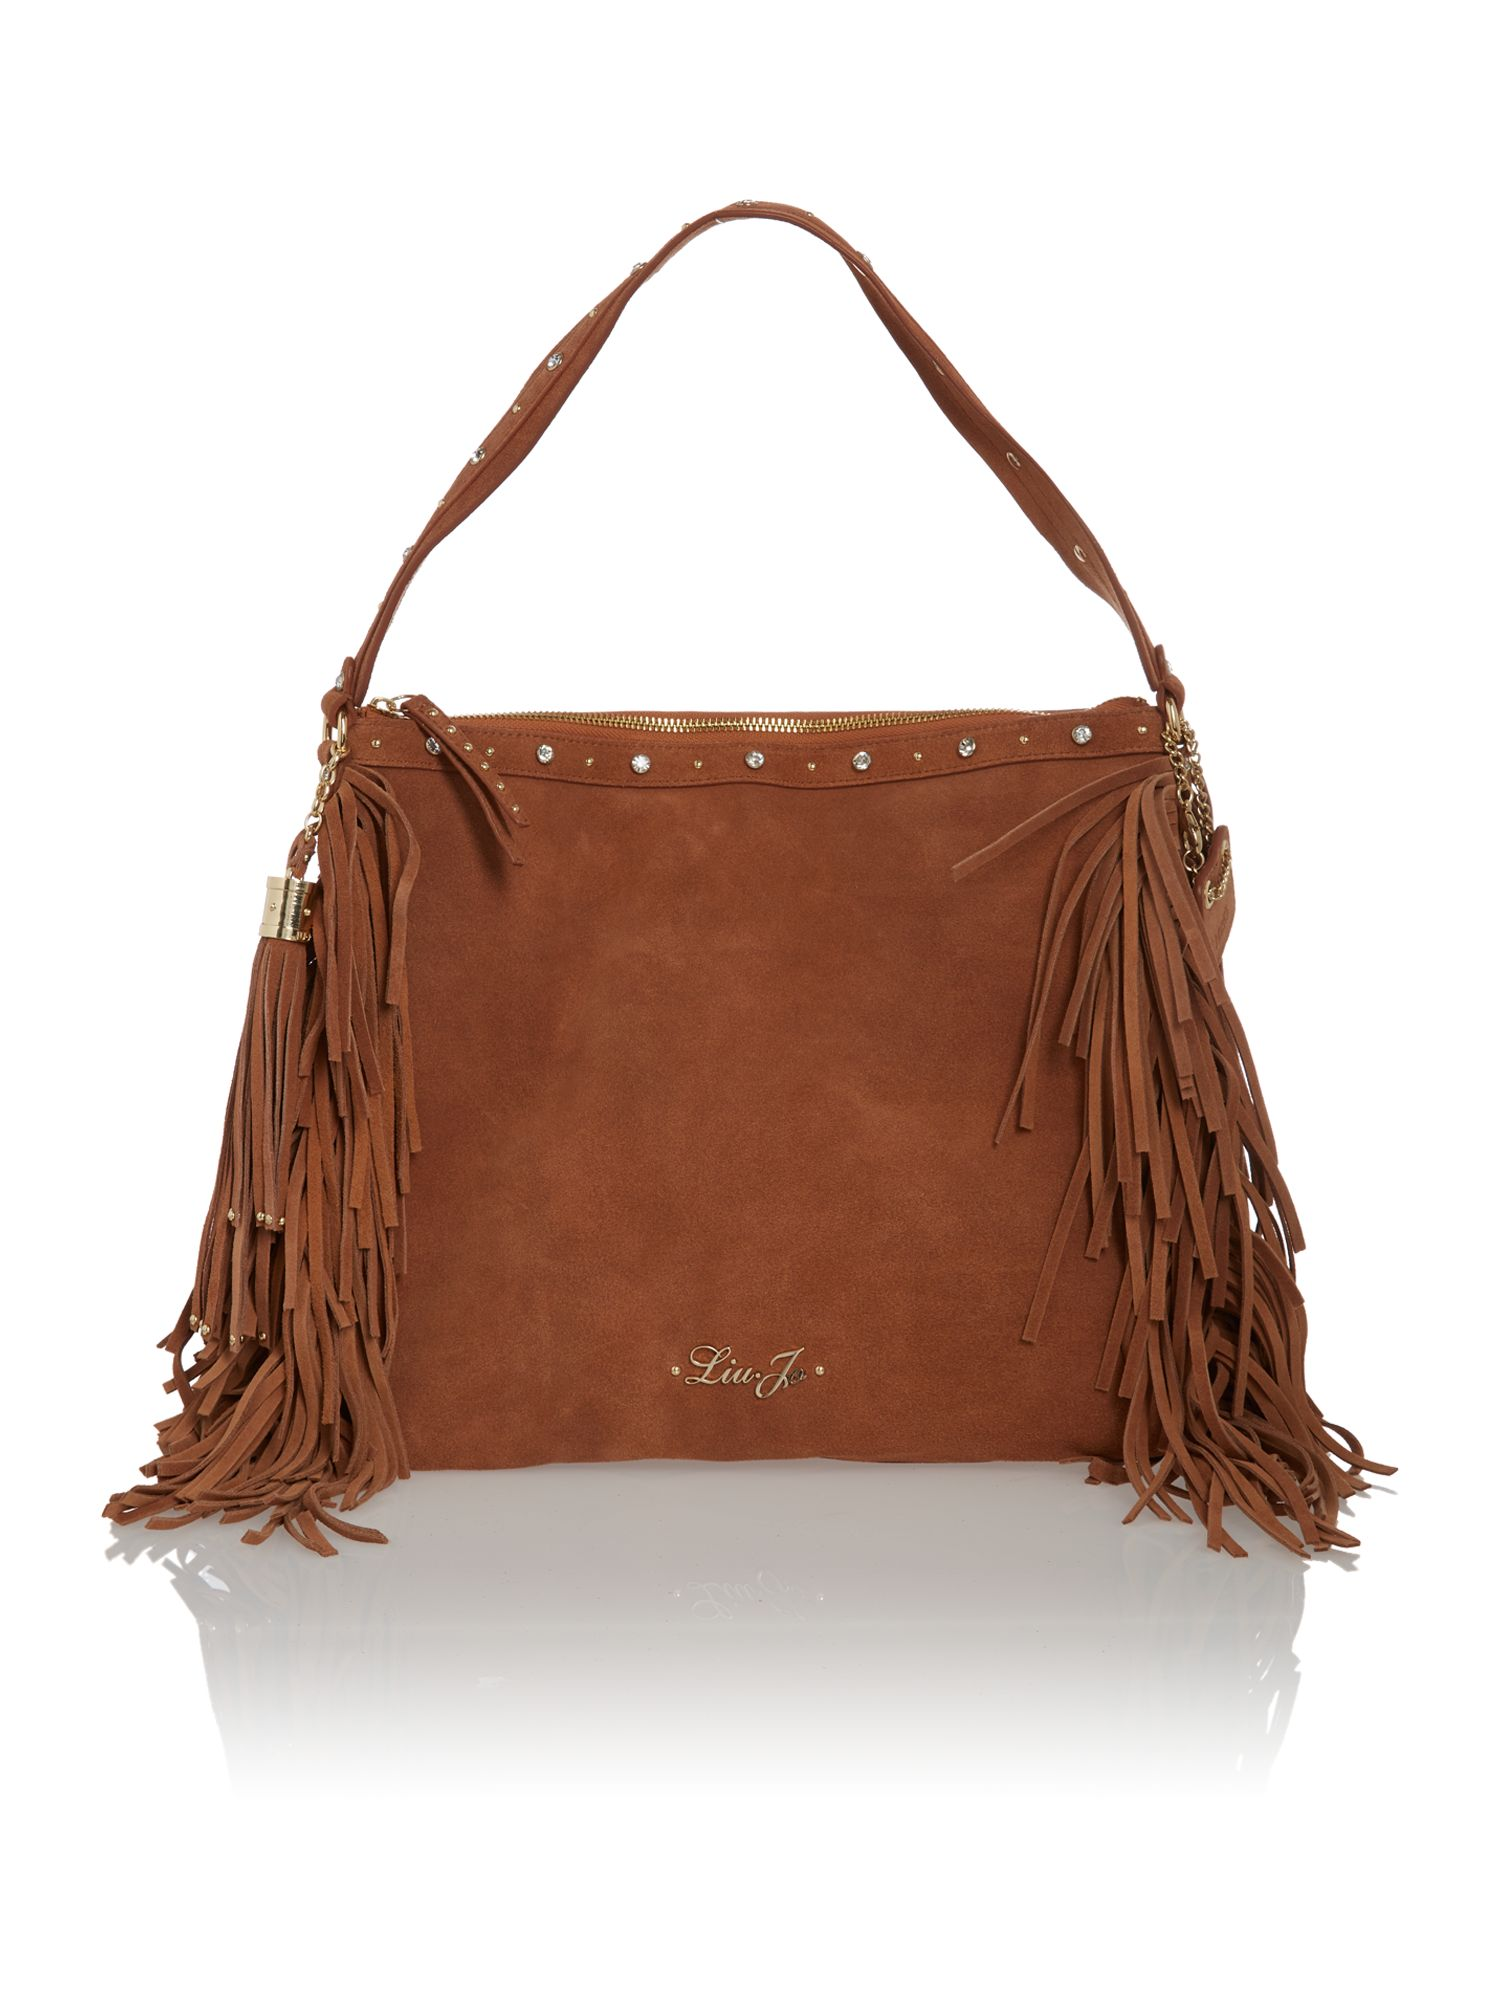 Diana brown tassle large crossbody bag